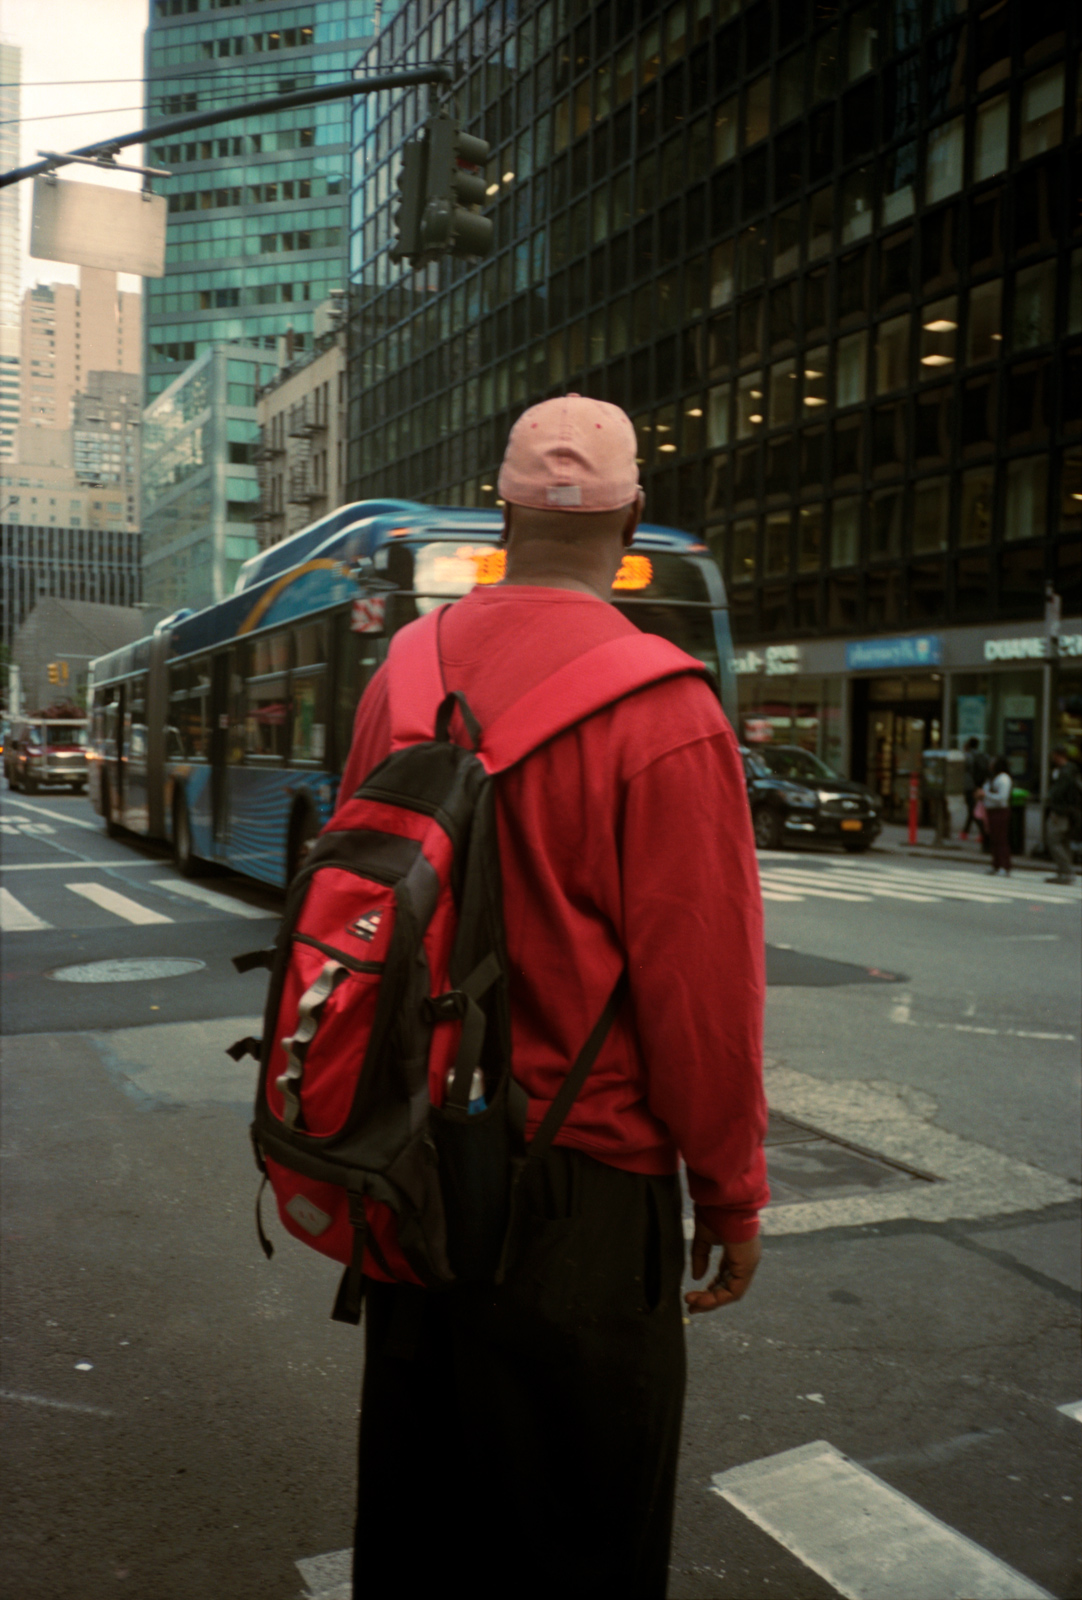 Varsity Player on the streets in New York. Lonely New York Photography Ioannis Koussertari.